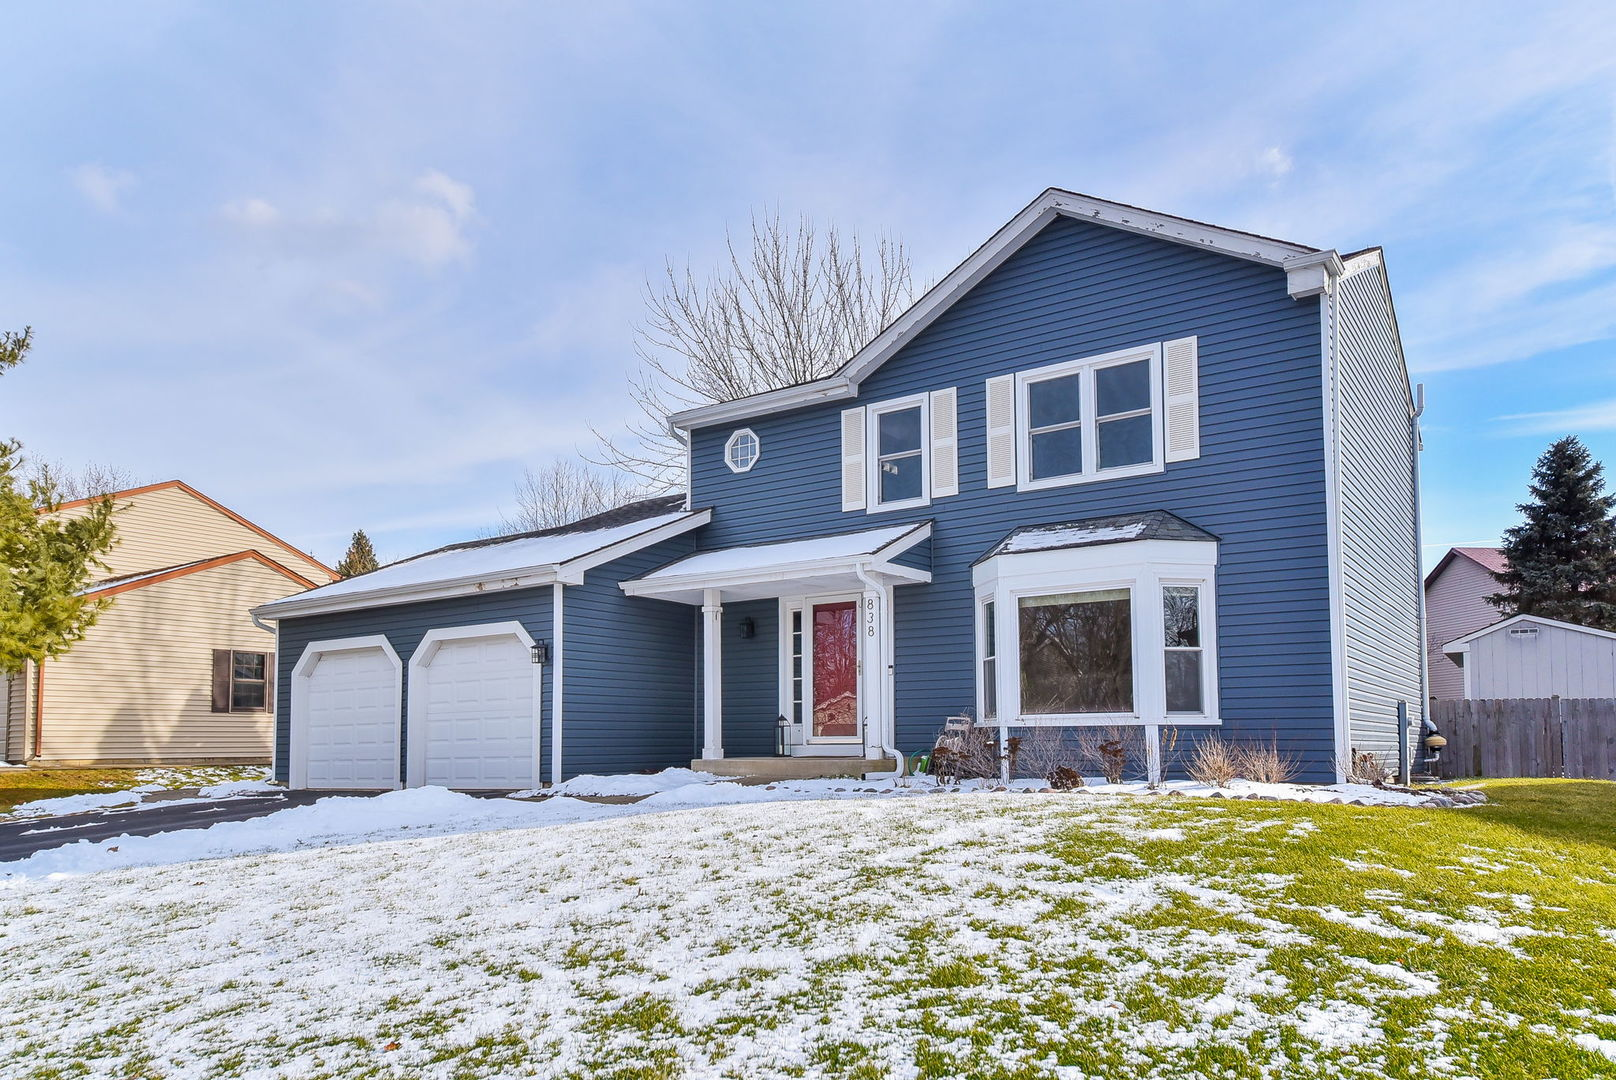 Photo for 838 Stewart Street, Batavia, IL 60510 (MLS # 10636229)